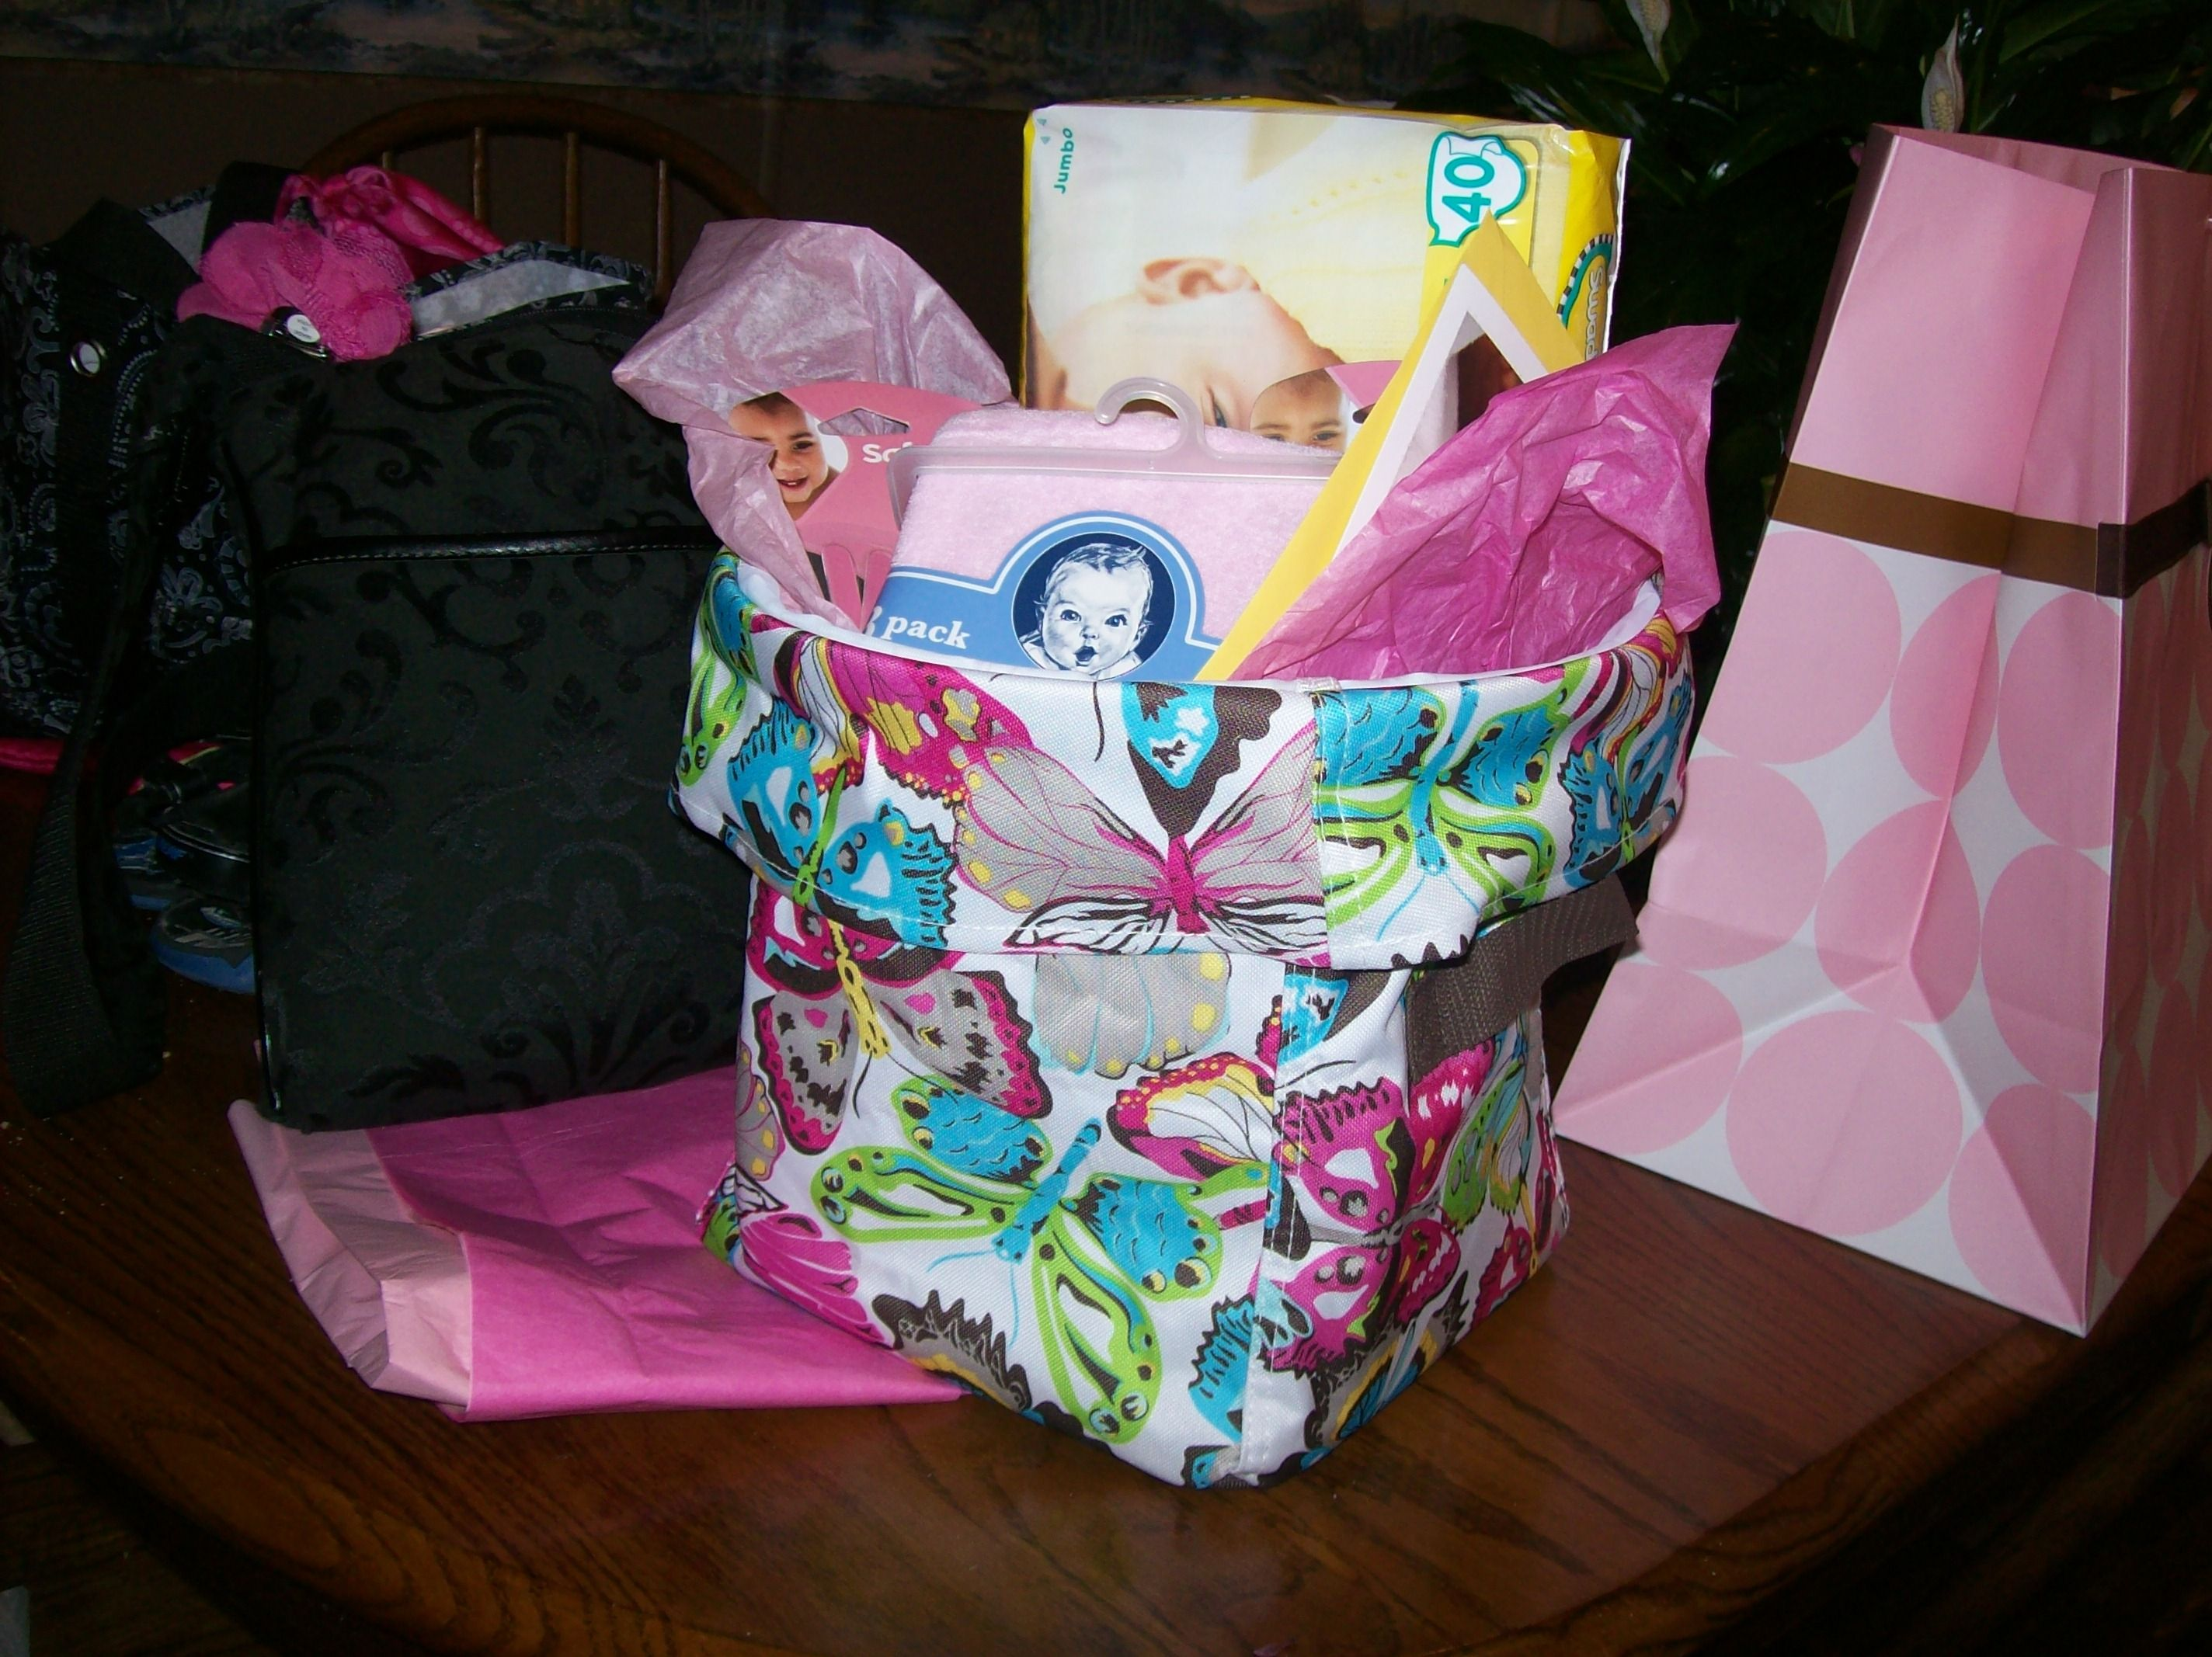 The Mini Utility Bin makes a great baby shower gift